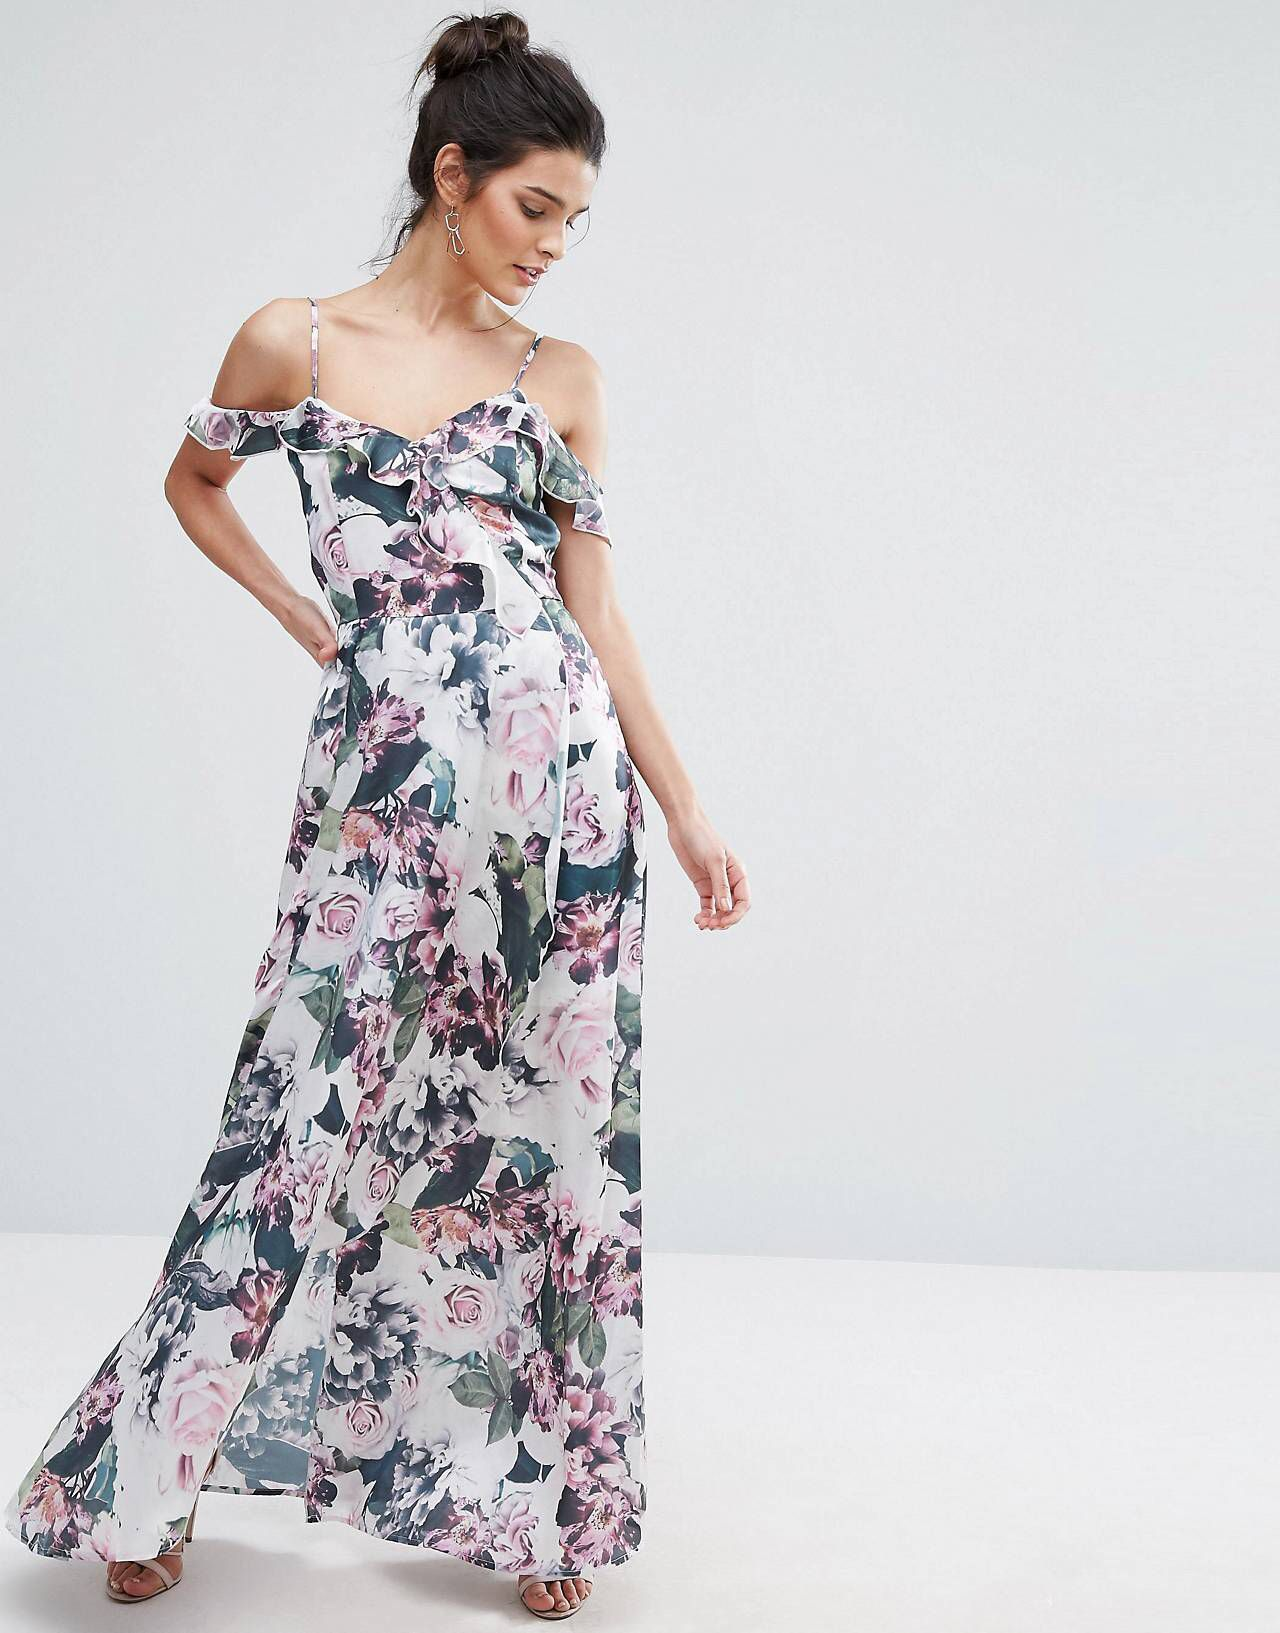 c48ecb06e5 LOVE this from ASOS! Vero Moda Cold Shoulder Ruffle Floral Maxi Dress ...